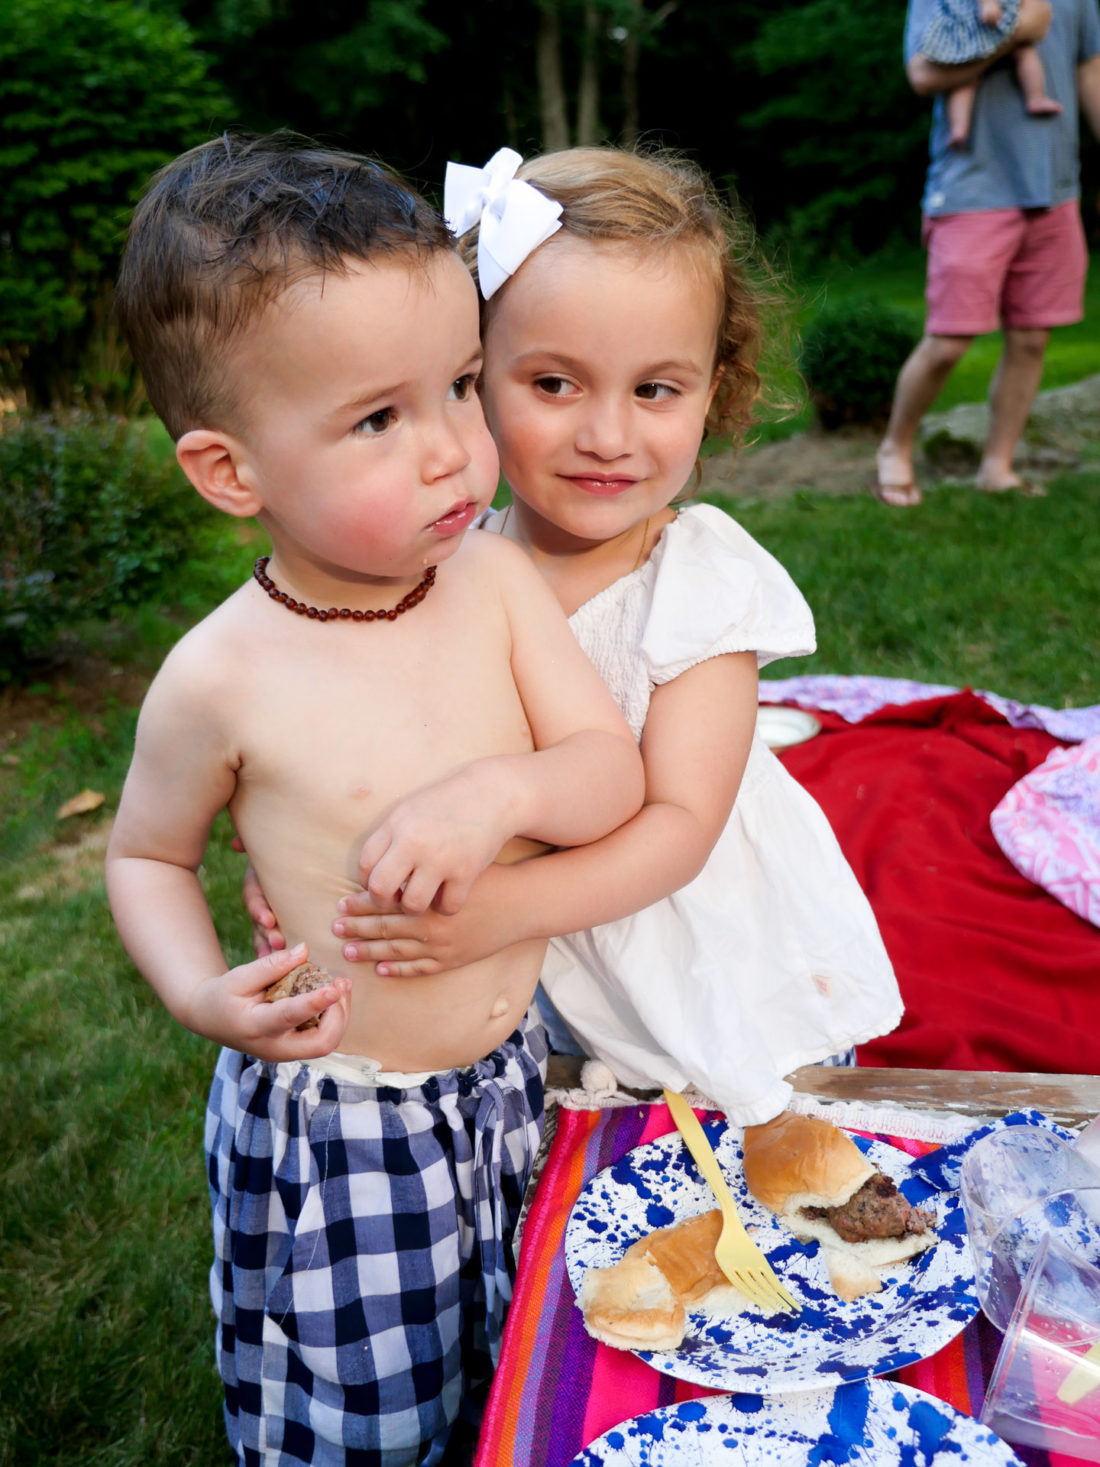 Major Martino gets a hug from a sweet little girl on the fourth of july in Connecticut